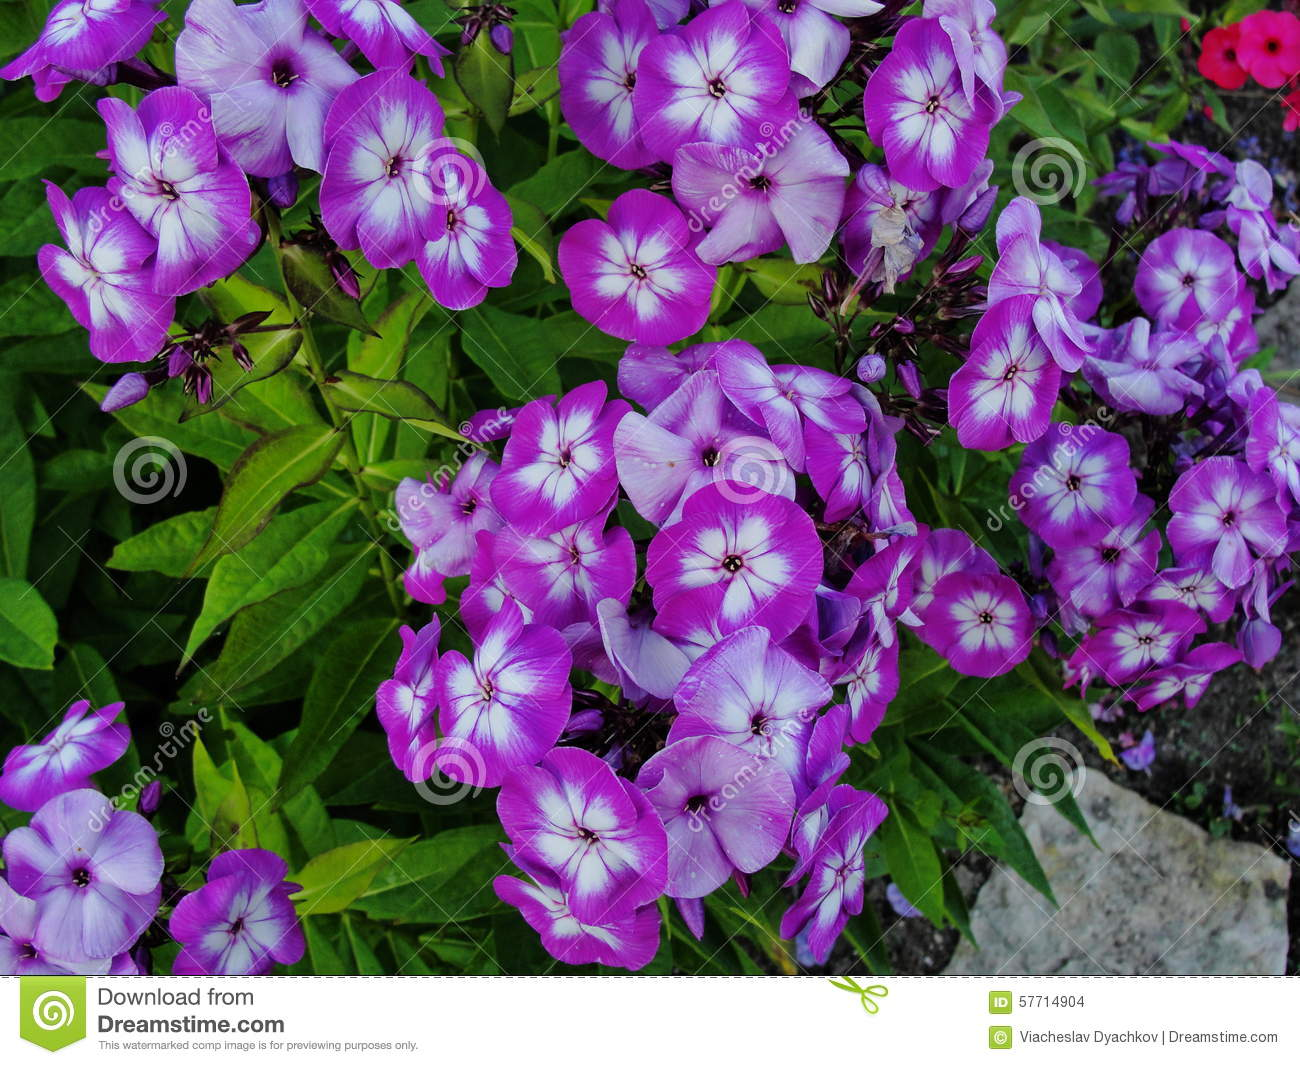 Perfect Purple Flower With White Center Images Wedding And Flowers